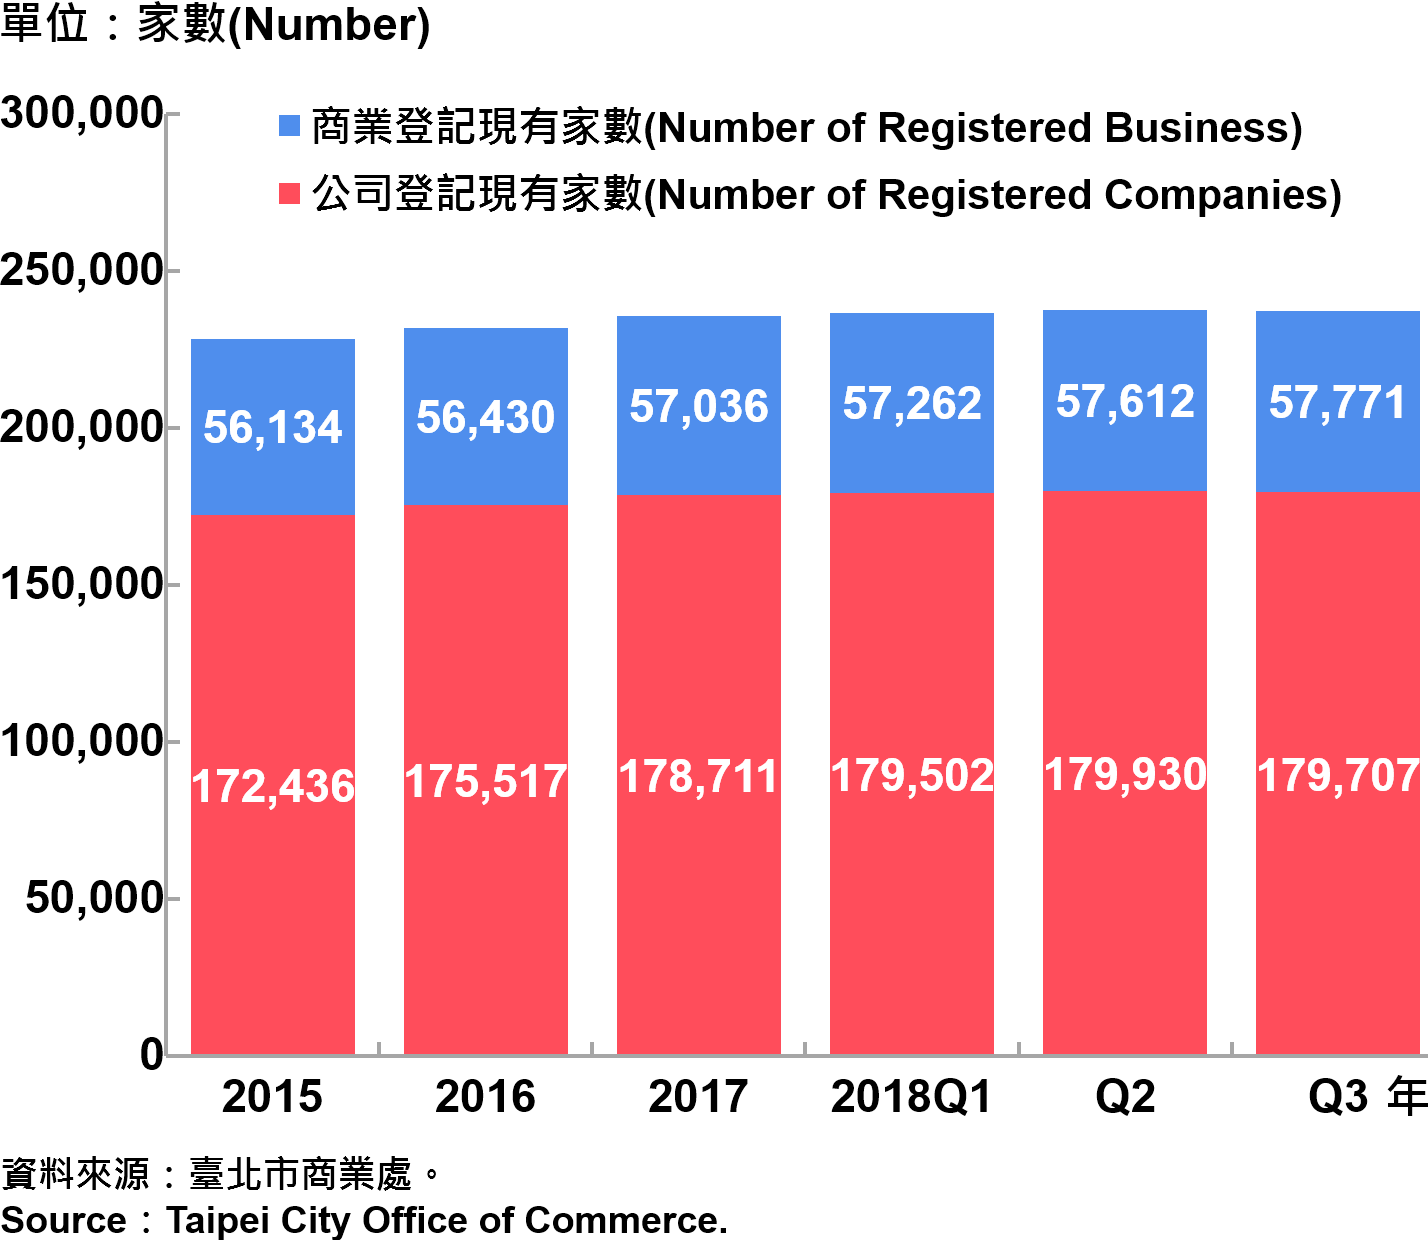 臺北市工商登記—2018Q3 Industry & Commerce Registration in Taipei—2018Q3